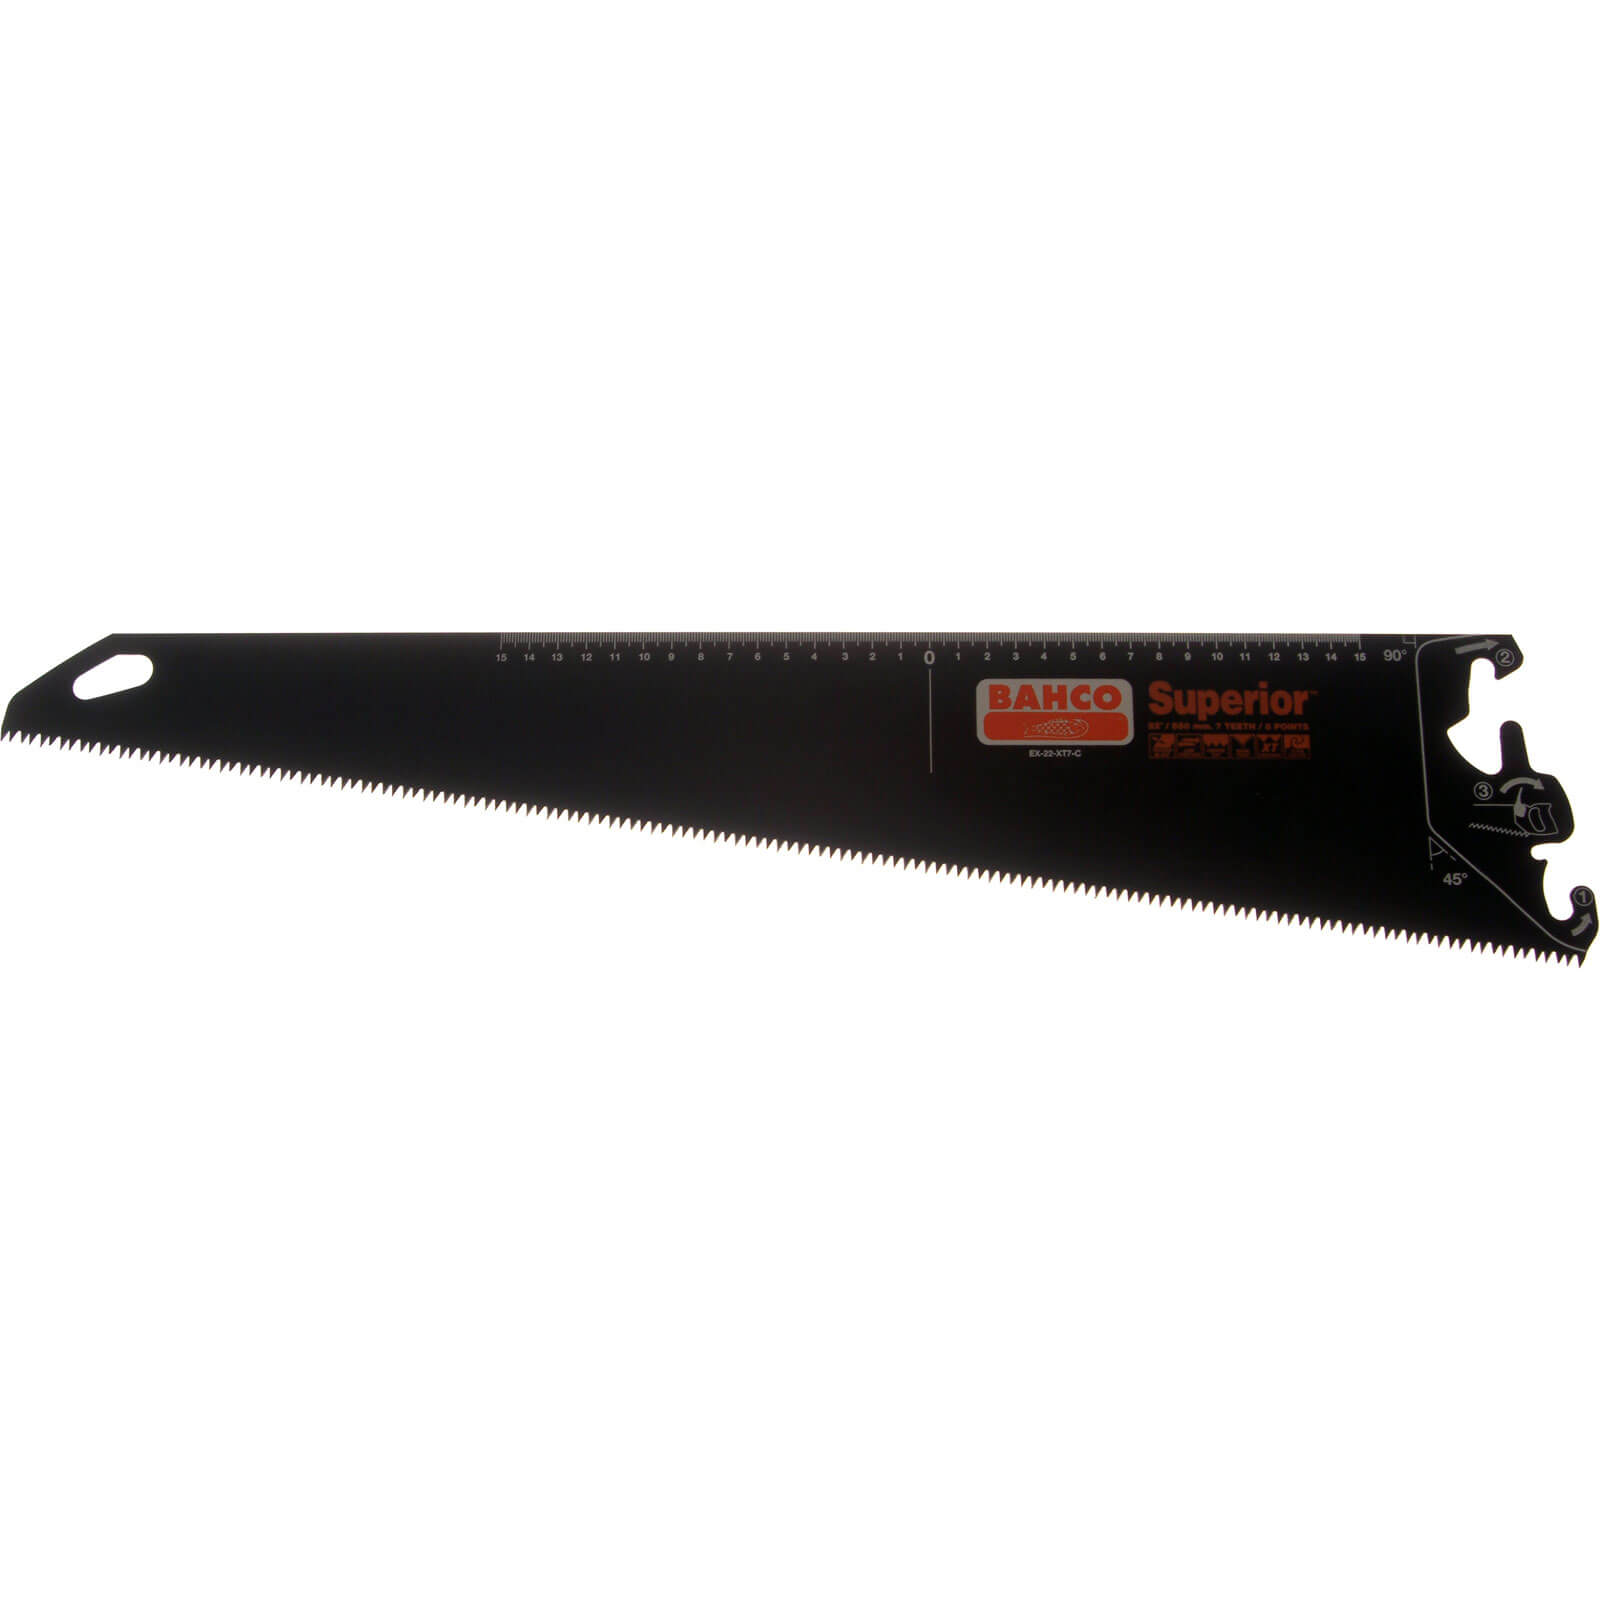 Bahco Superior Hand Saw System Coarse Saw Blade 24  600mm 7tpi